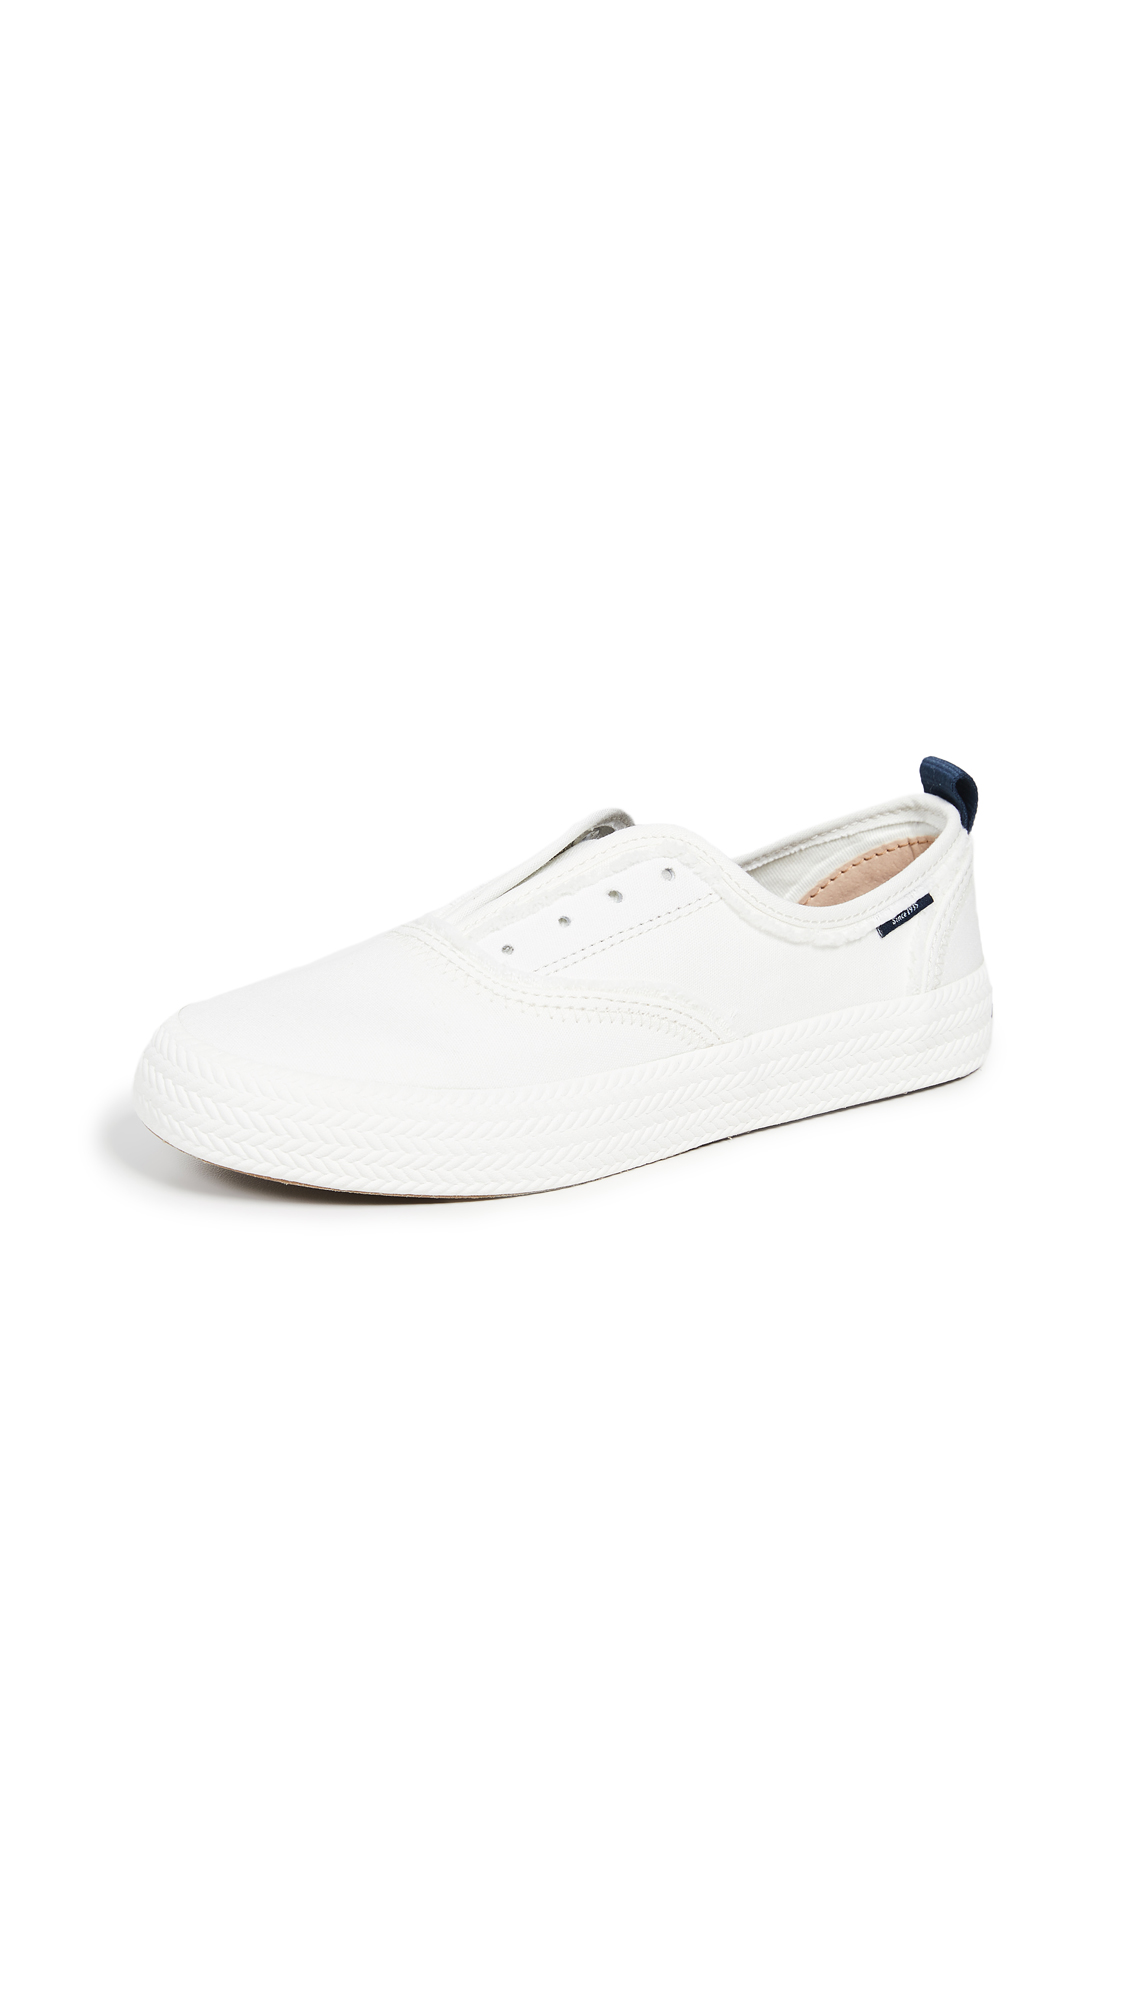 Sperry Crest Knot Fray Sneakers – 60% Off Sale